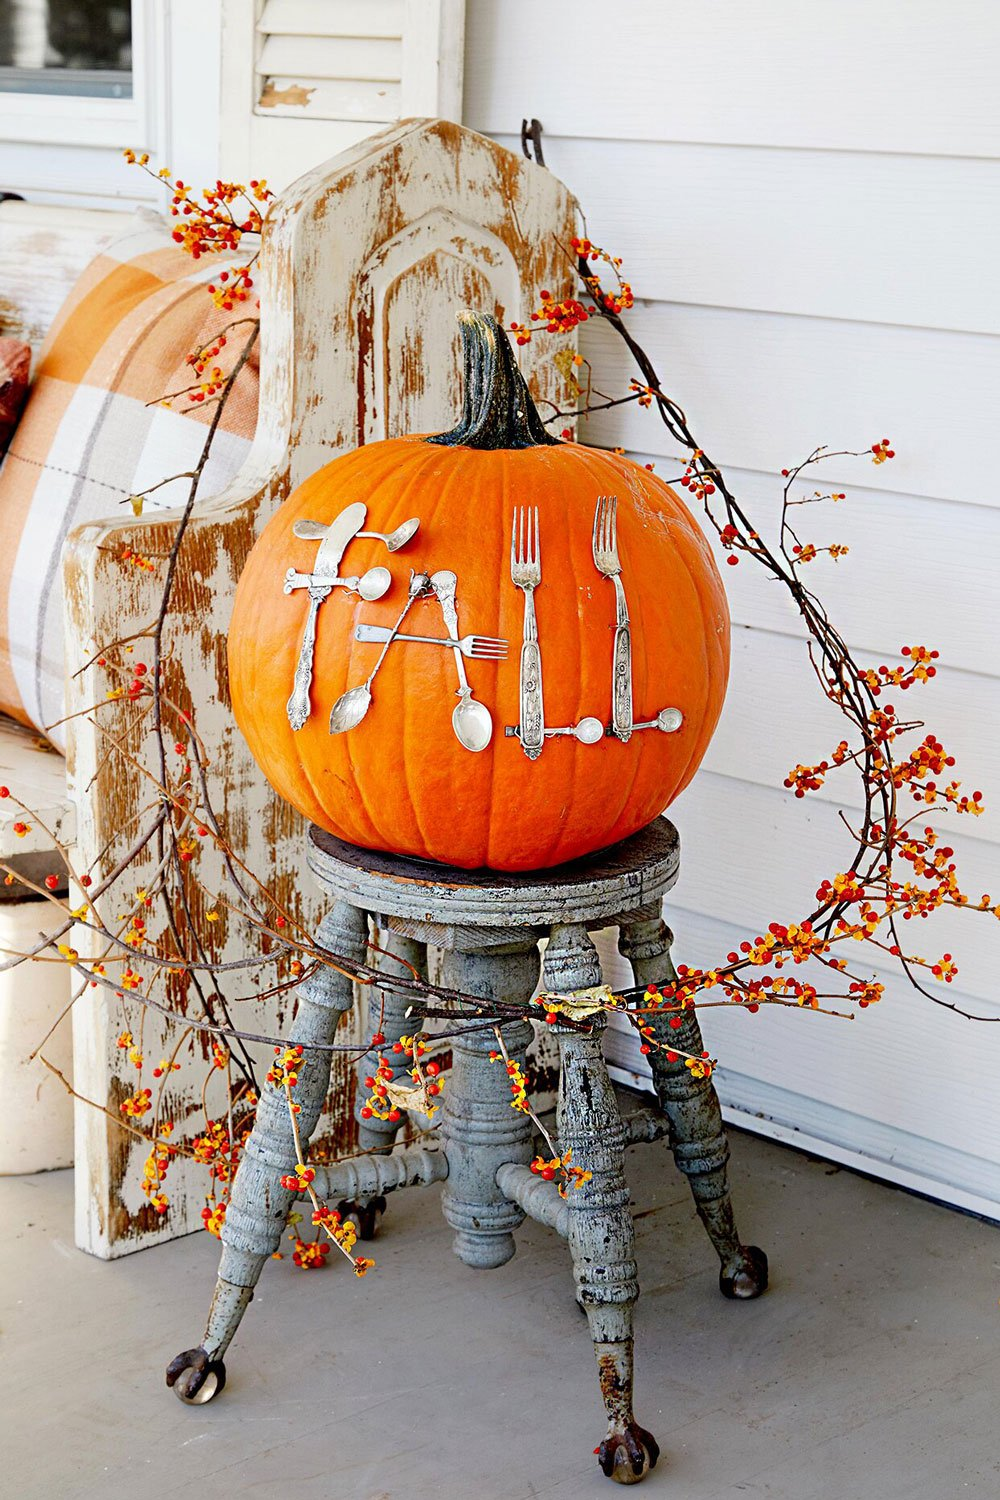 Fall Pumpkin Decorating Ideas With Pumpkins And Gourds The Budget Decorator